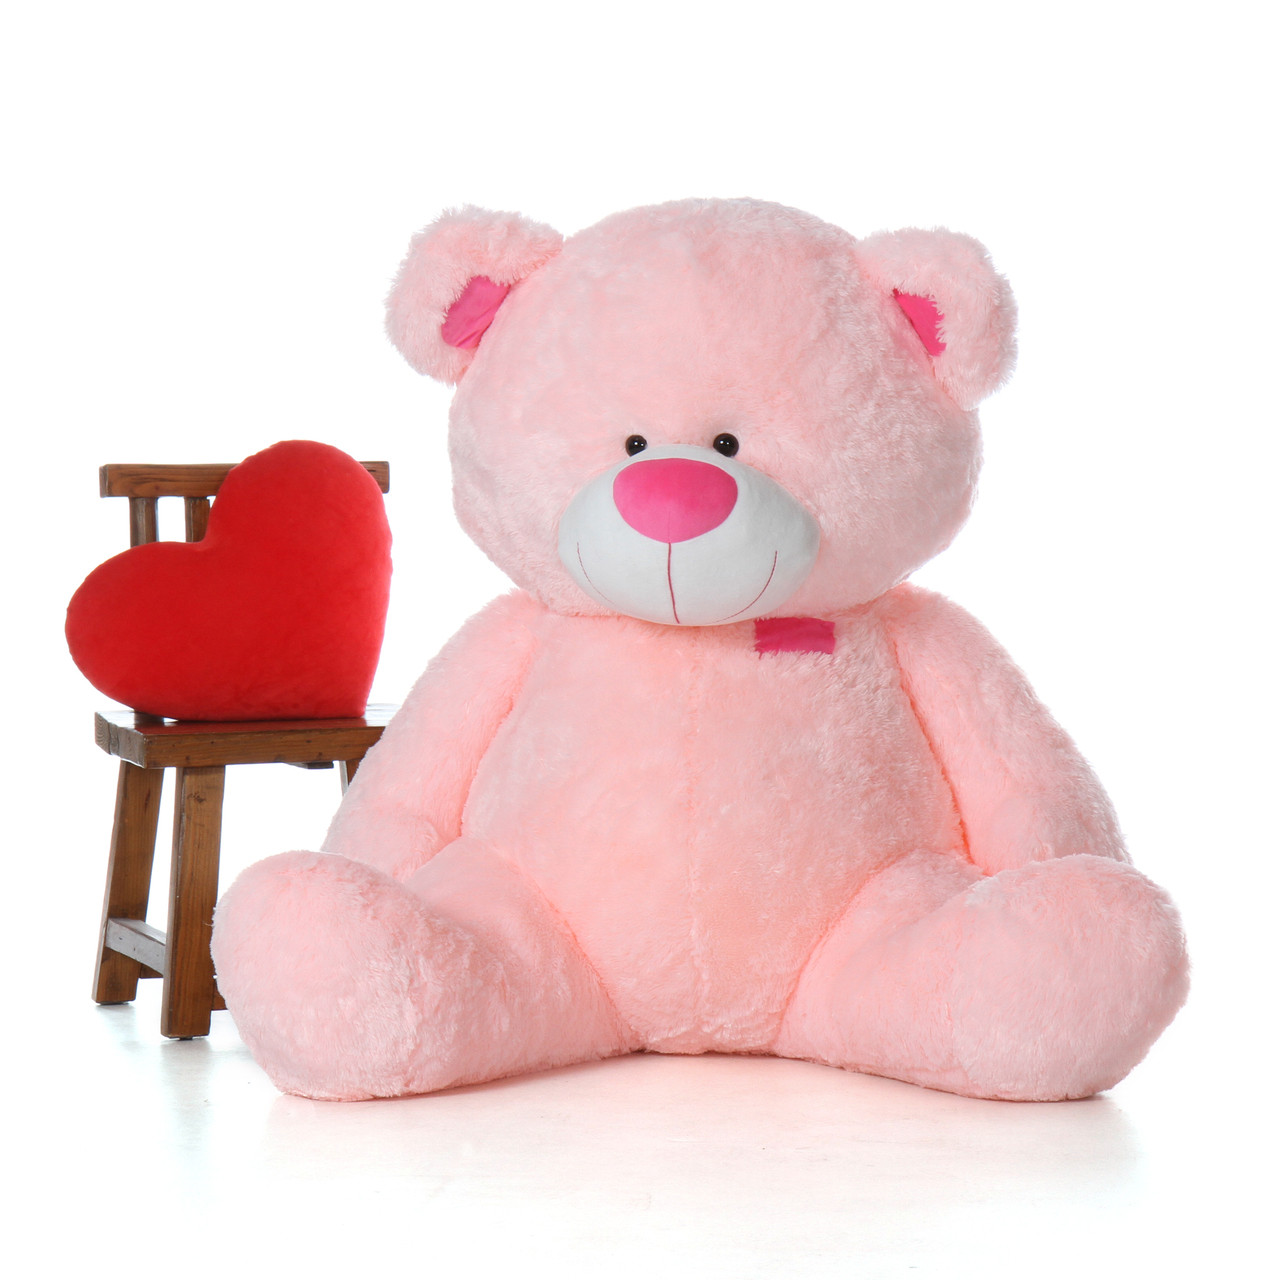 5 Foot Super Soft Giant Pink Teddy Bear